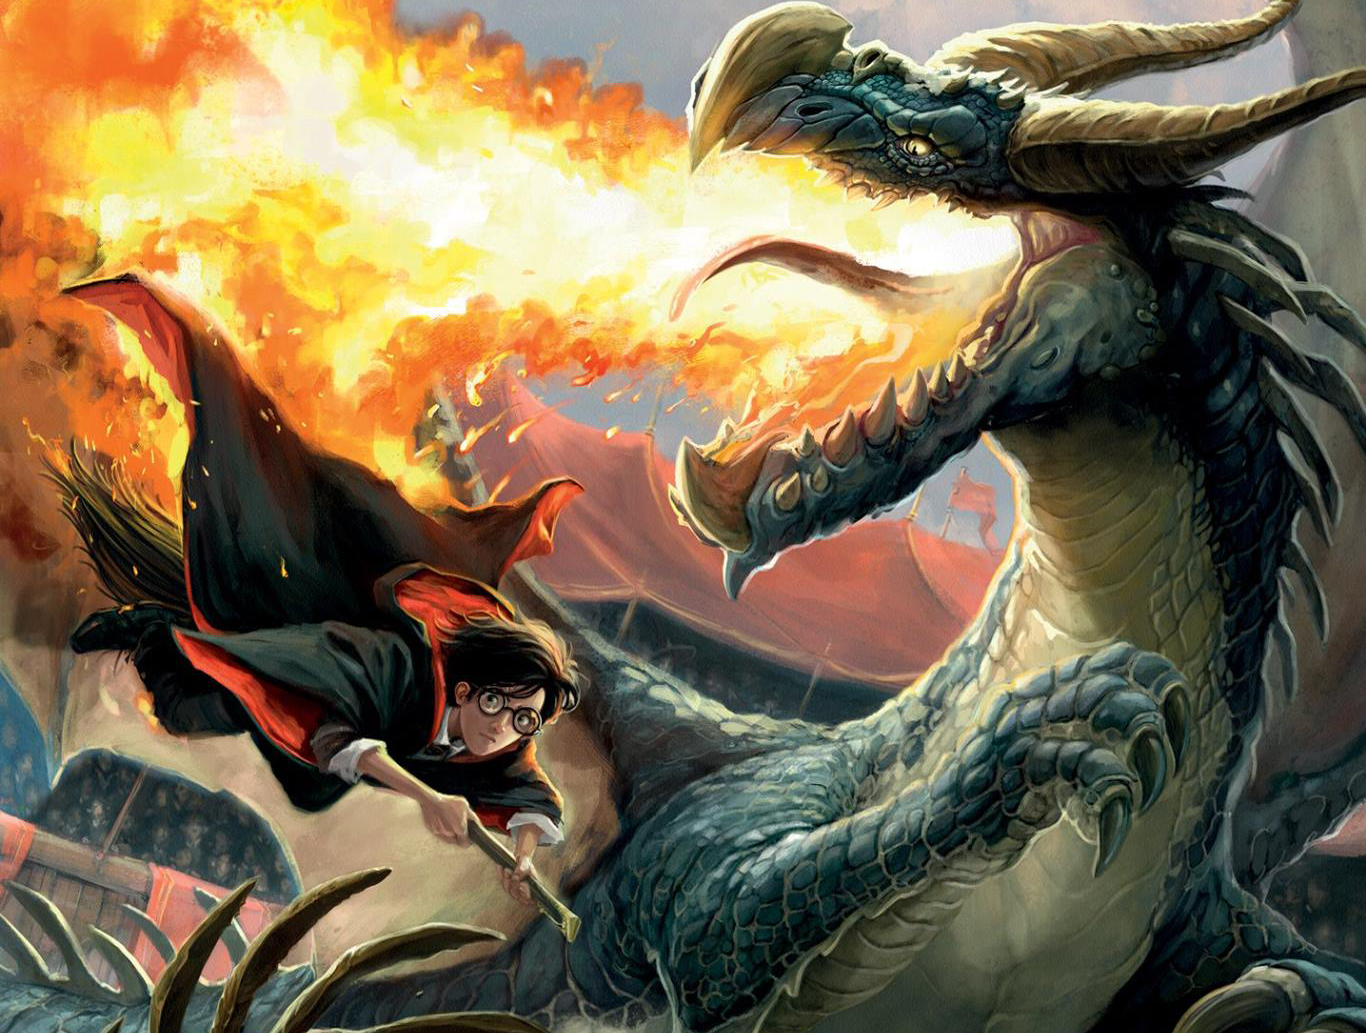 Cover art of Harry dodging dragon fire.